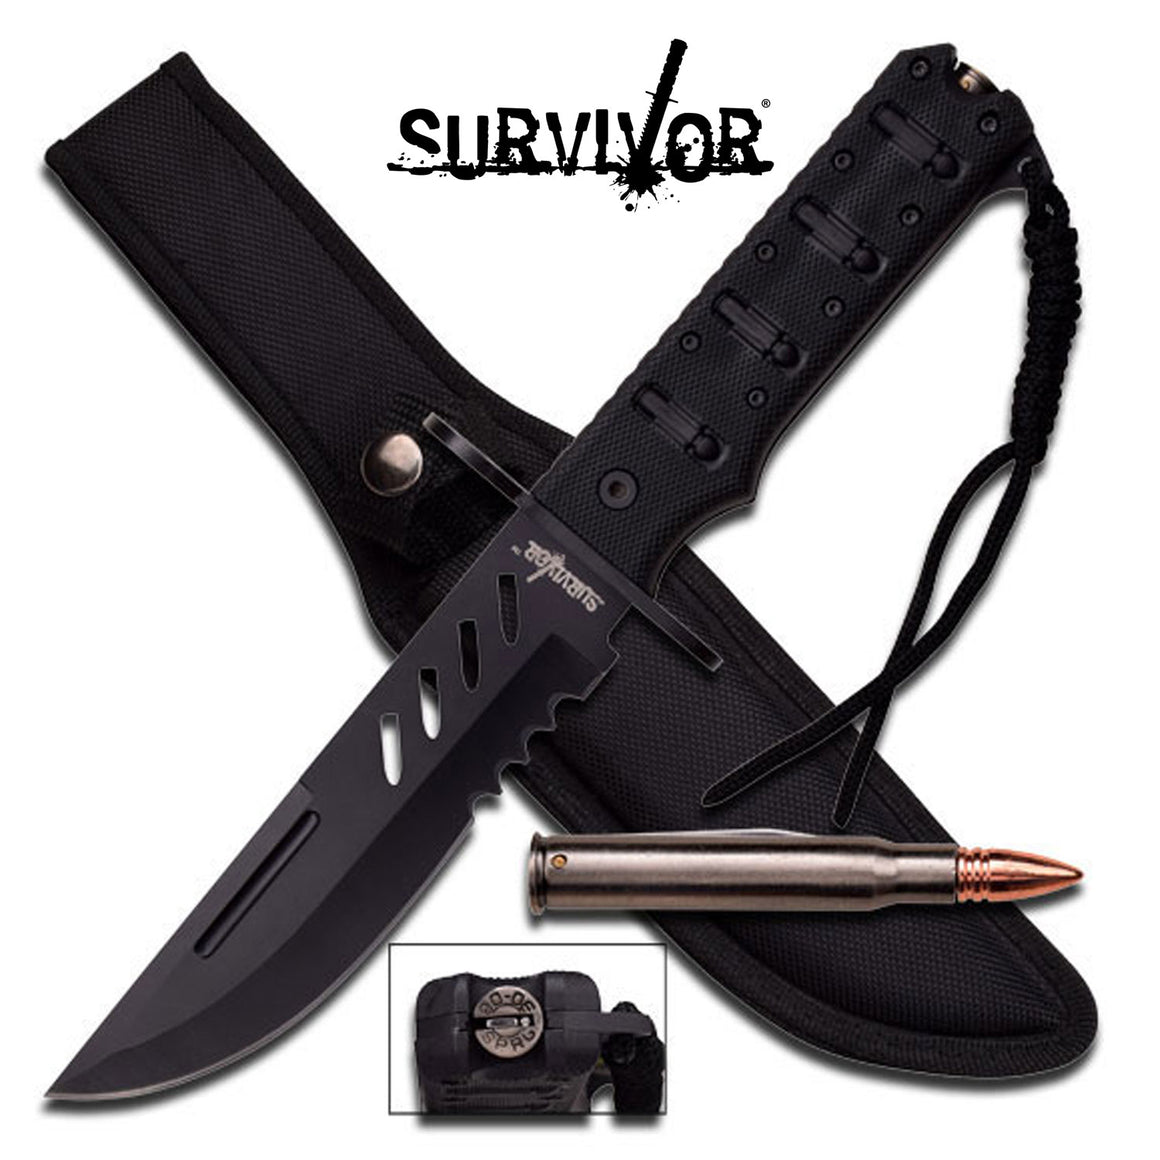 Survivor HK-773 Fixed Blade Knife